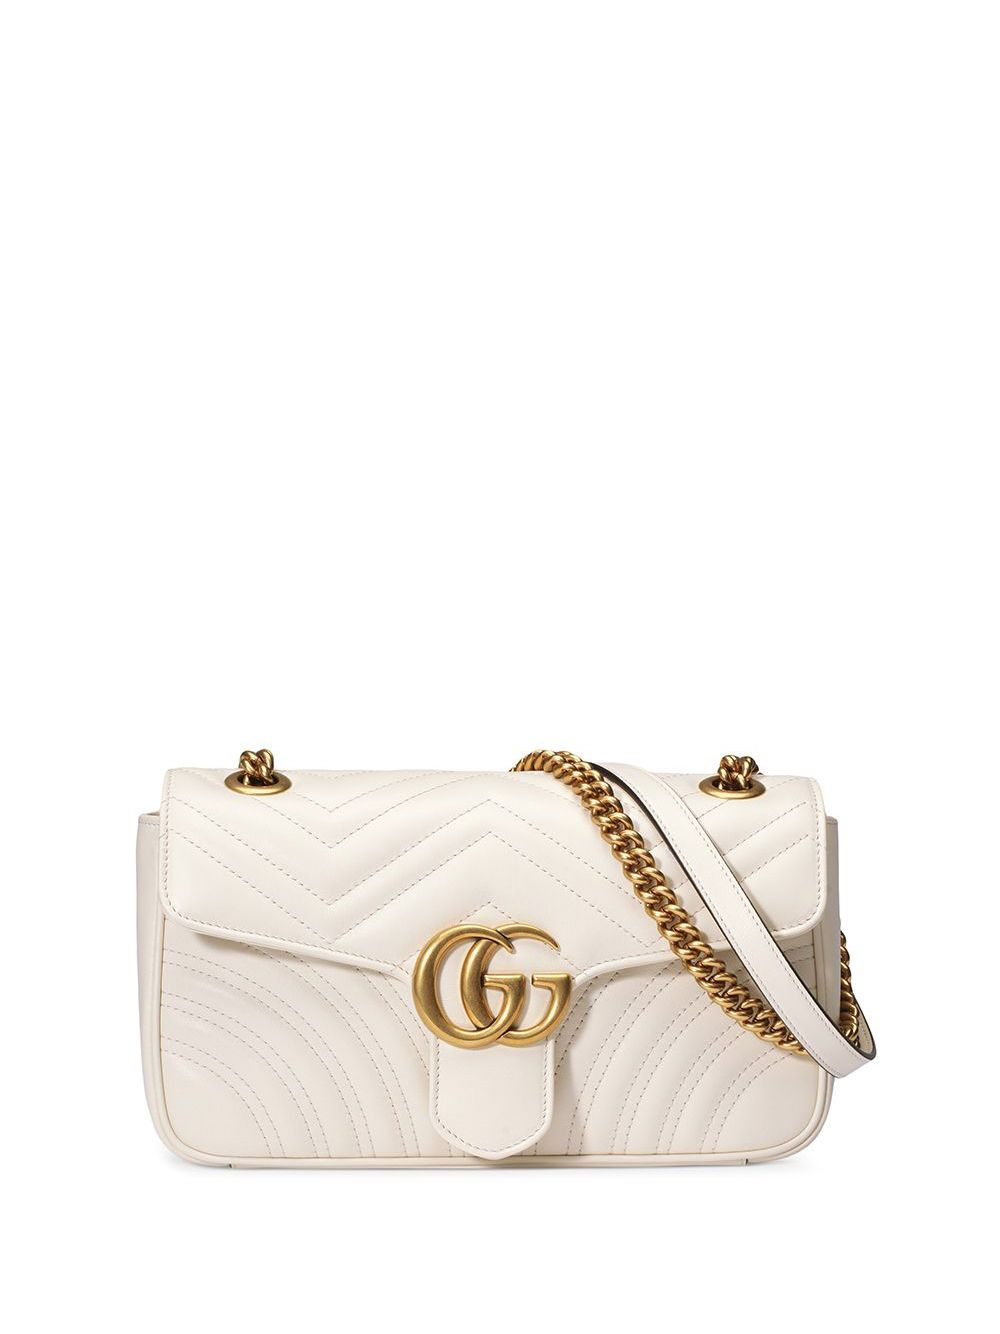 Marmont Small Leather Shoulder Bag